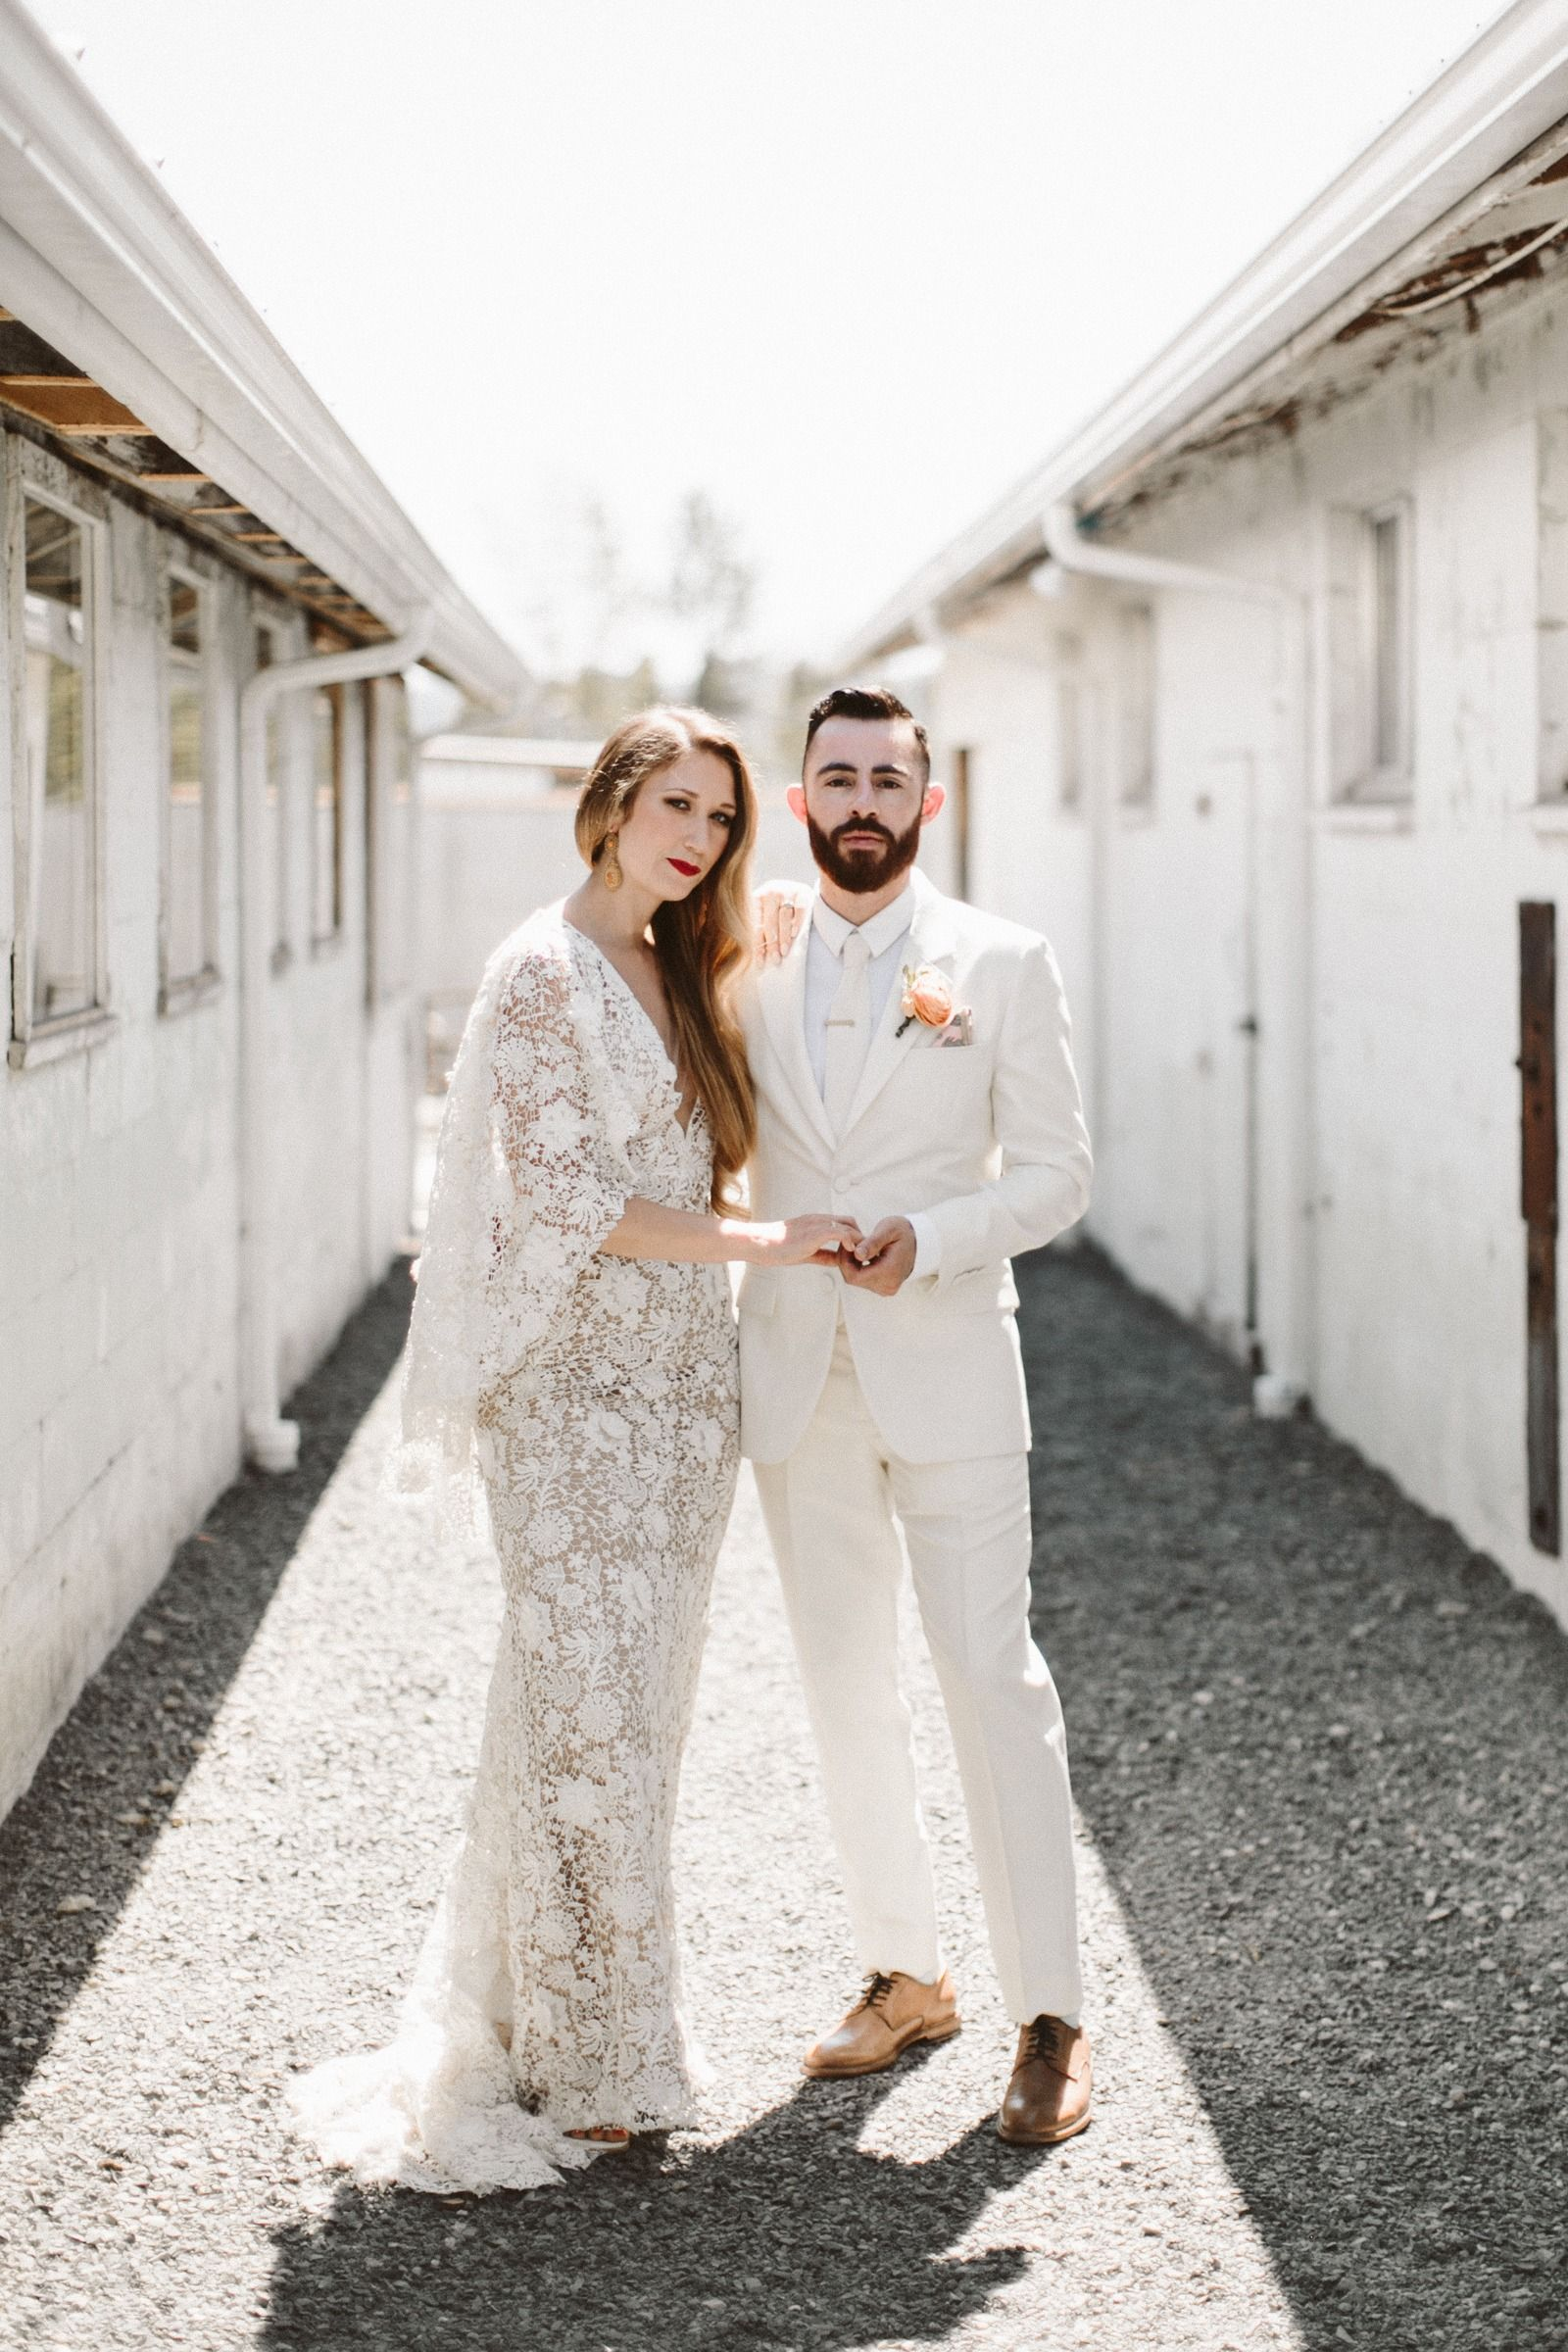 Mandy Nate Seattle Wa Allison Harp Dairyland Wedding Photographer White Wedding Suit Wedding Suits Groom Sarah Seven Wedding Dresses